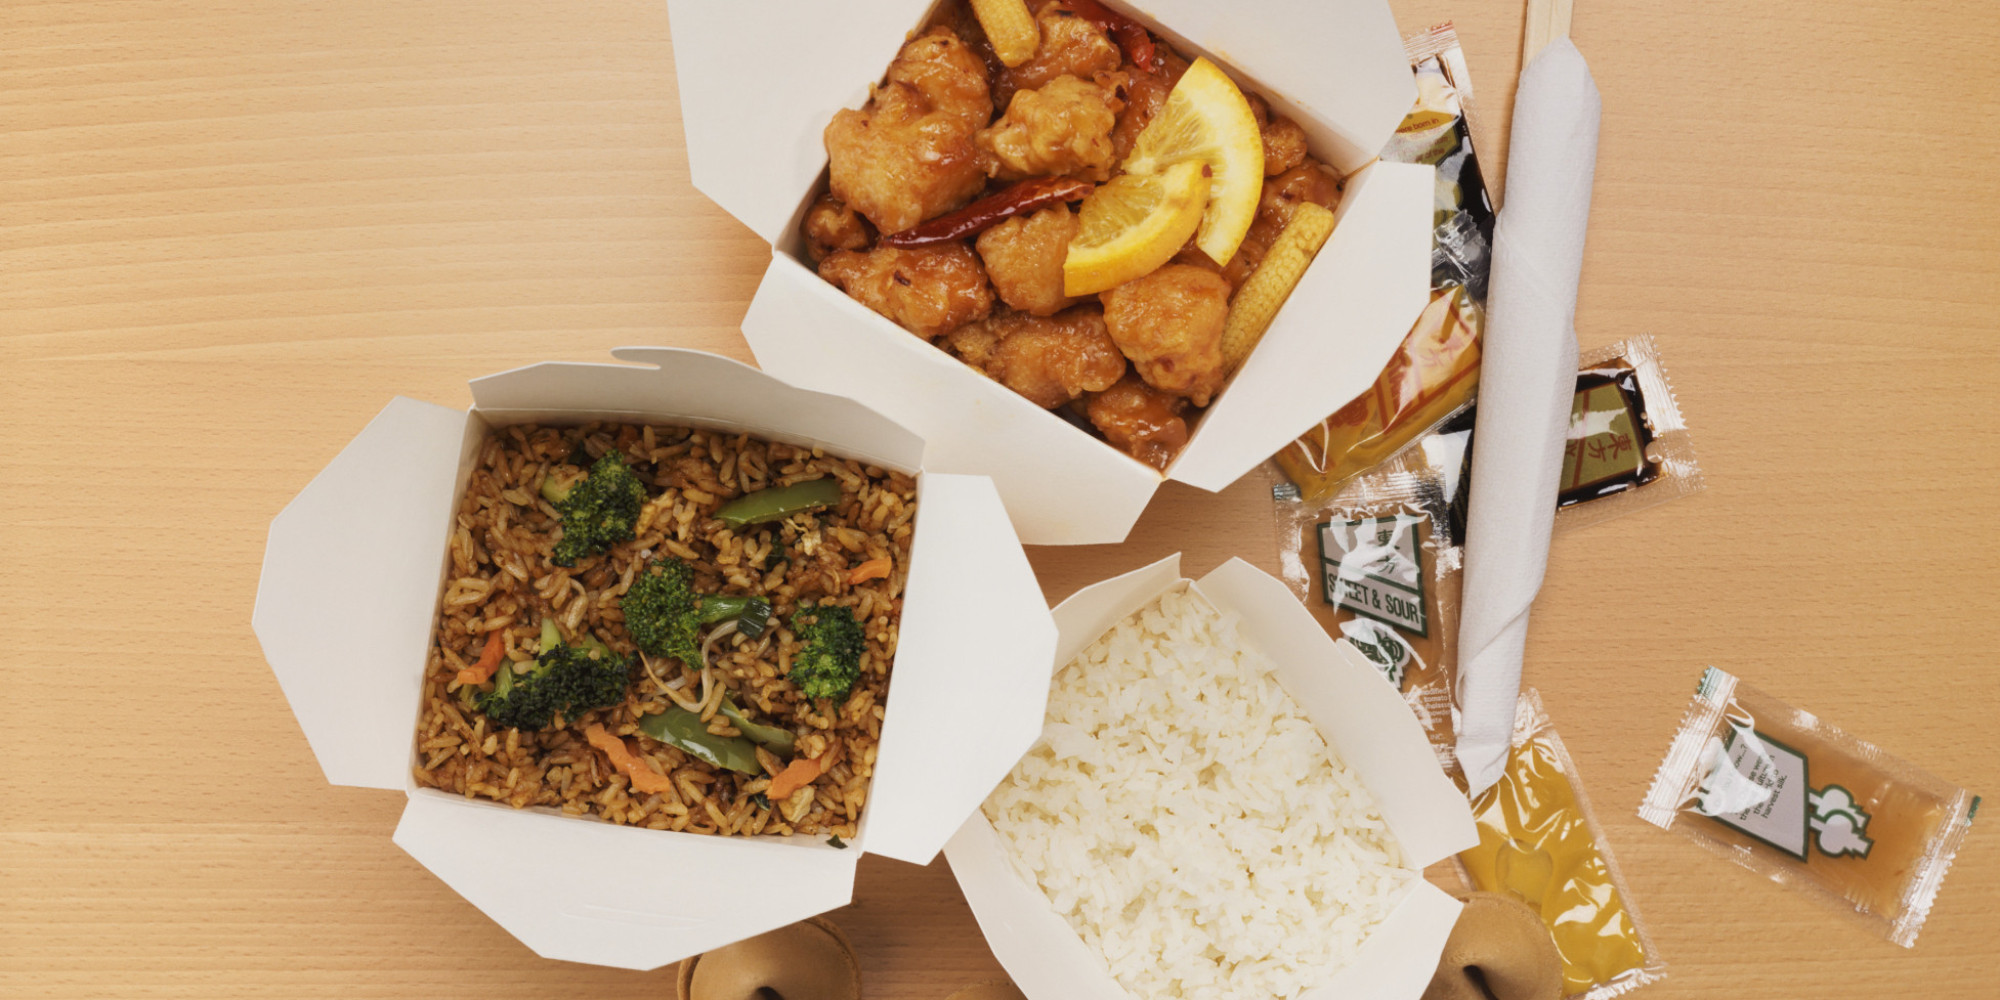 takeout food - photo #28